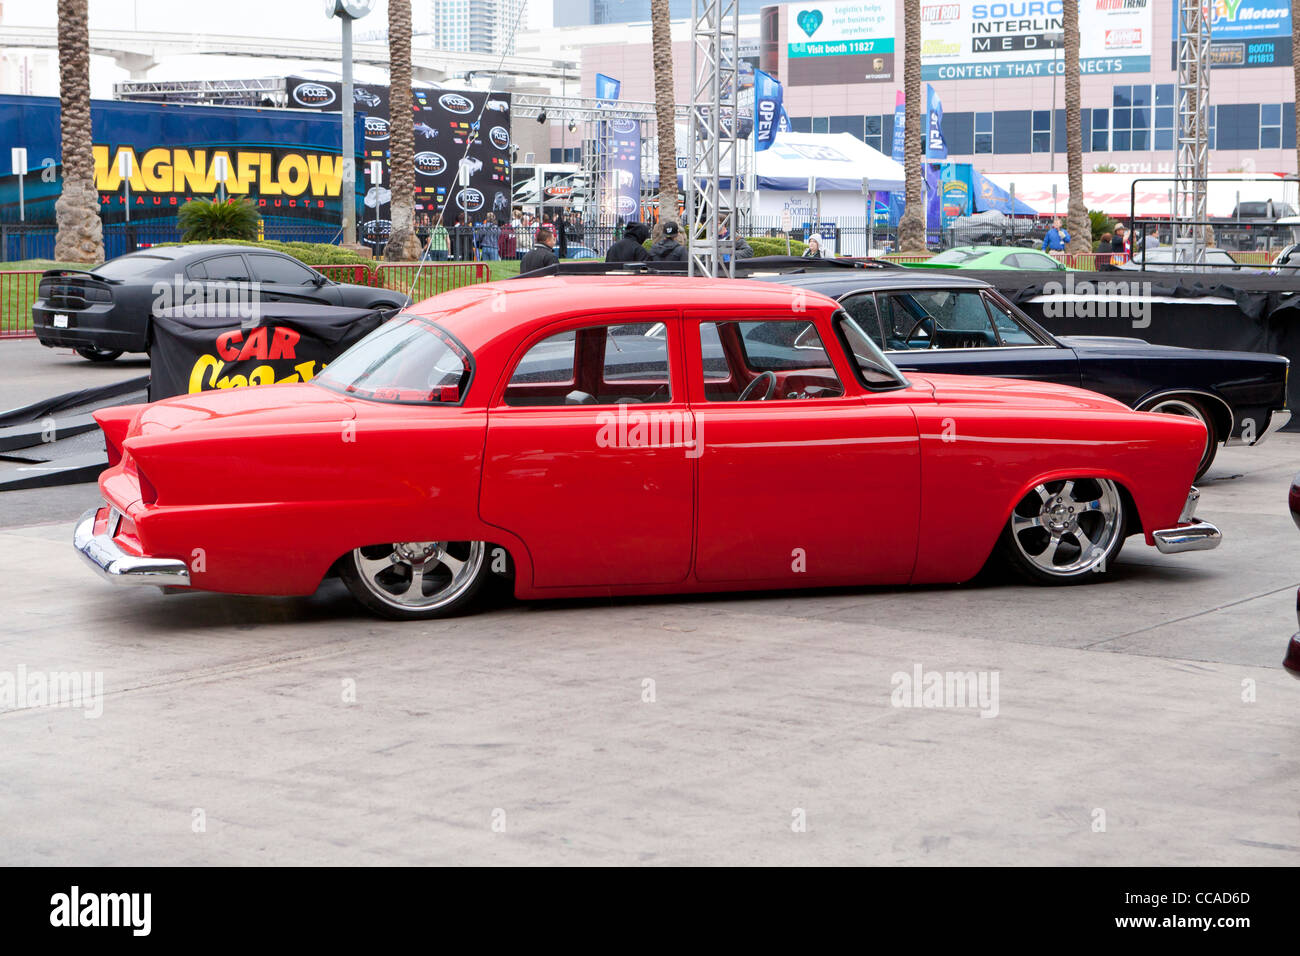 Rebuilt 50s Chevy low rider - Stock Image